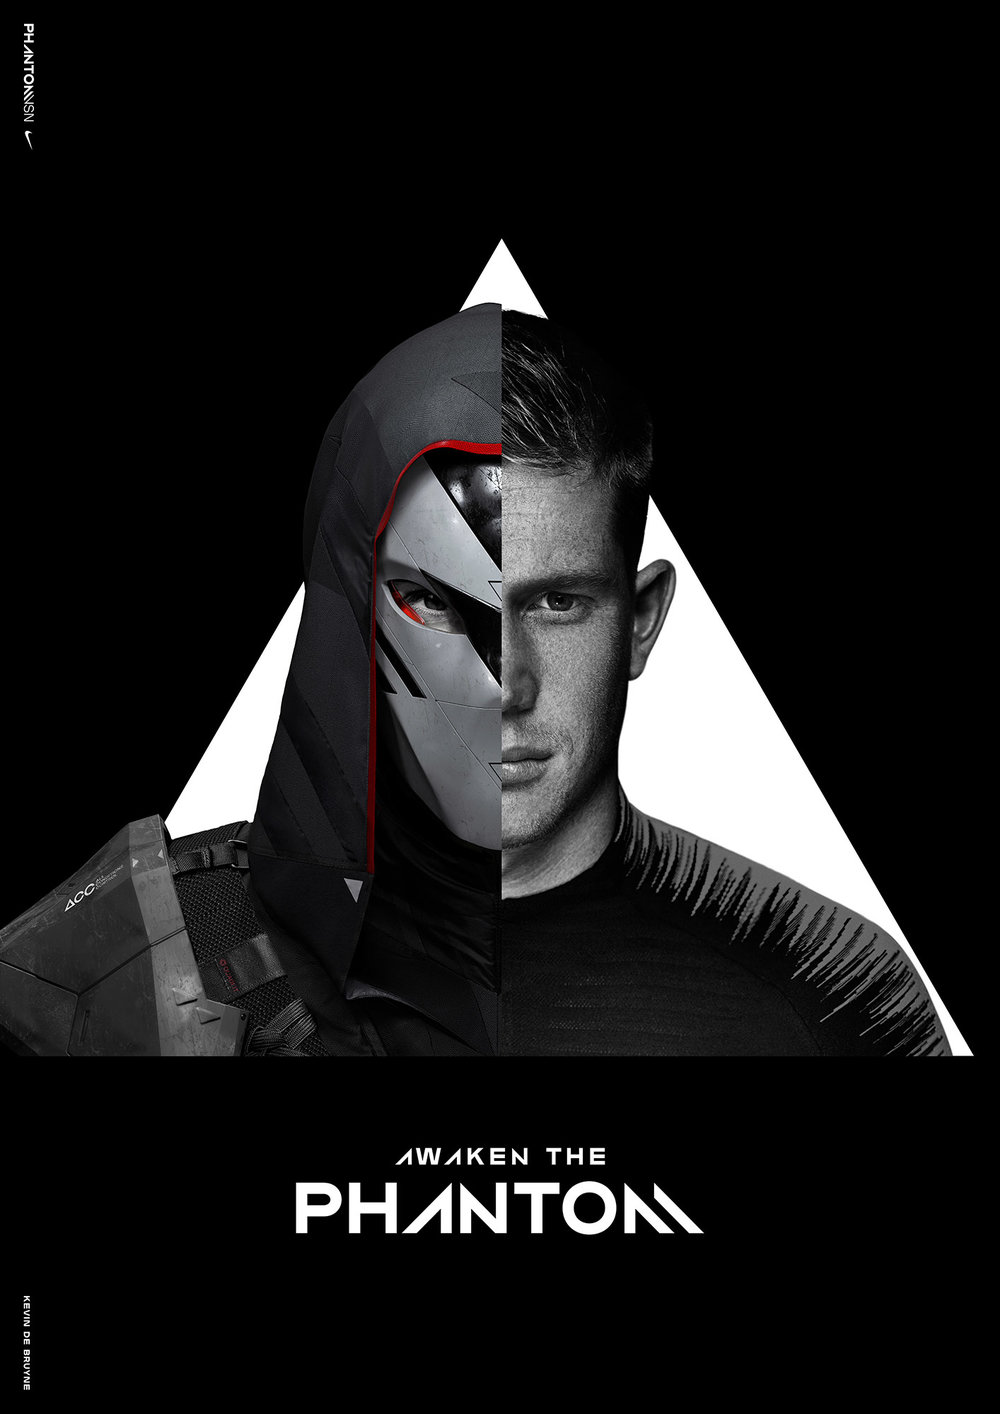 FA18_GFB_KDB_ALTER_EGO_PHANTOM_POSTERS_ASSASSIN_01.jpg